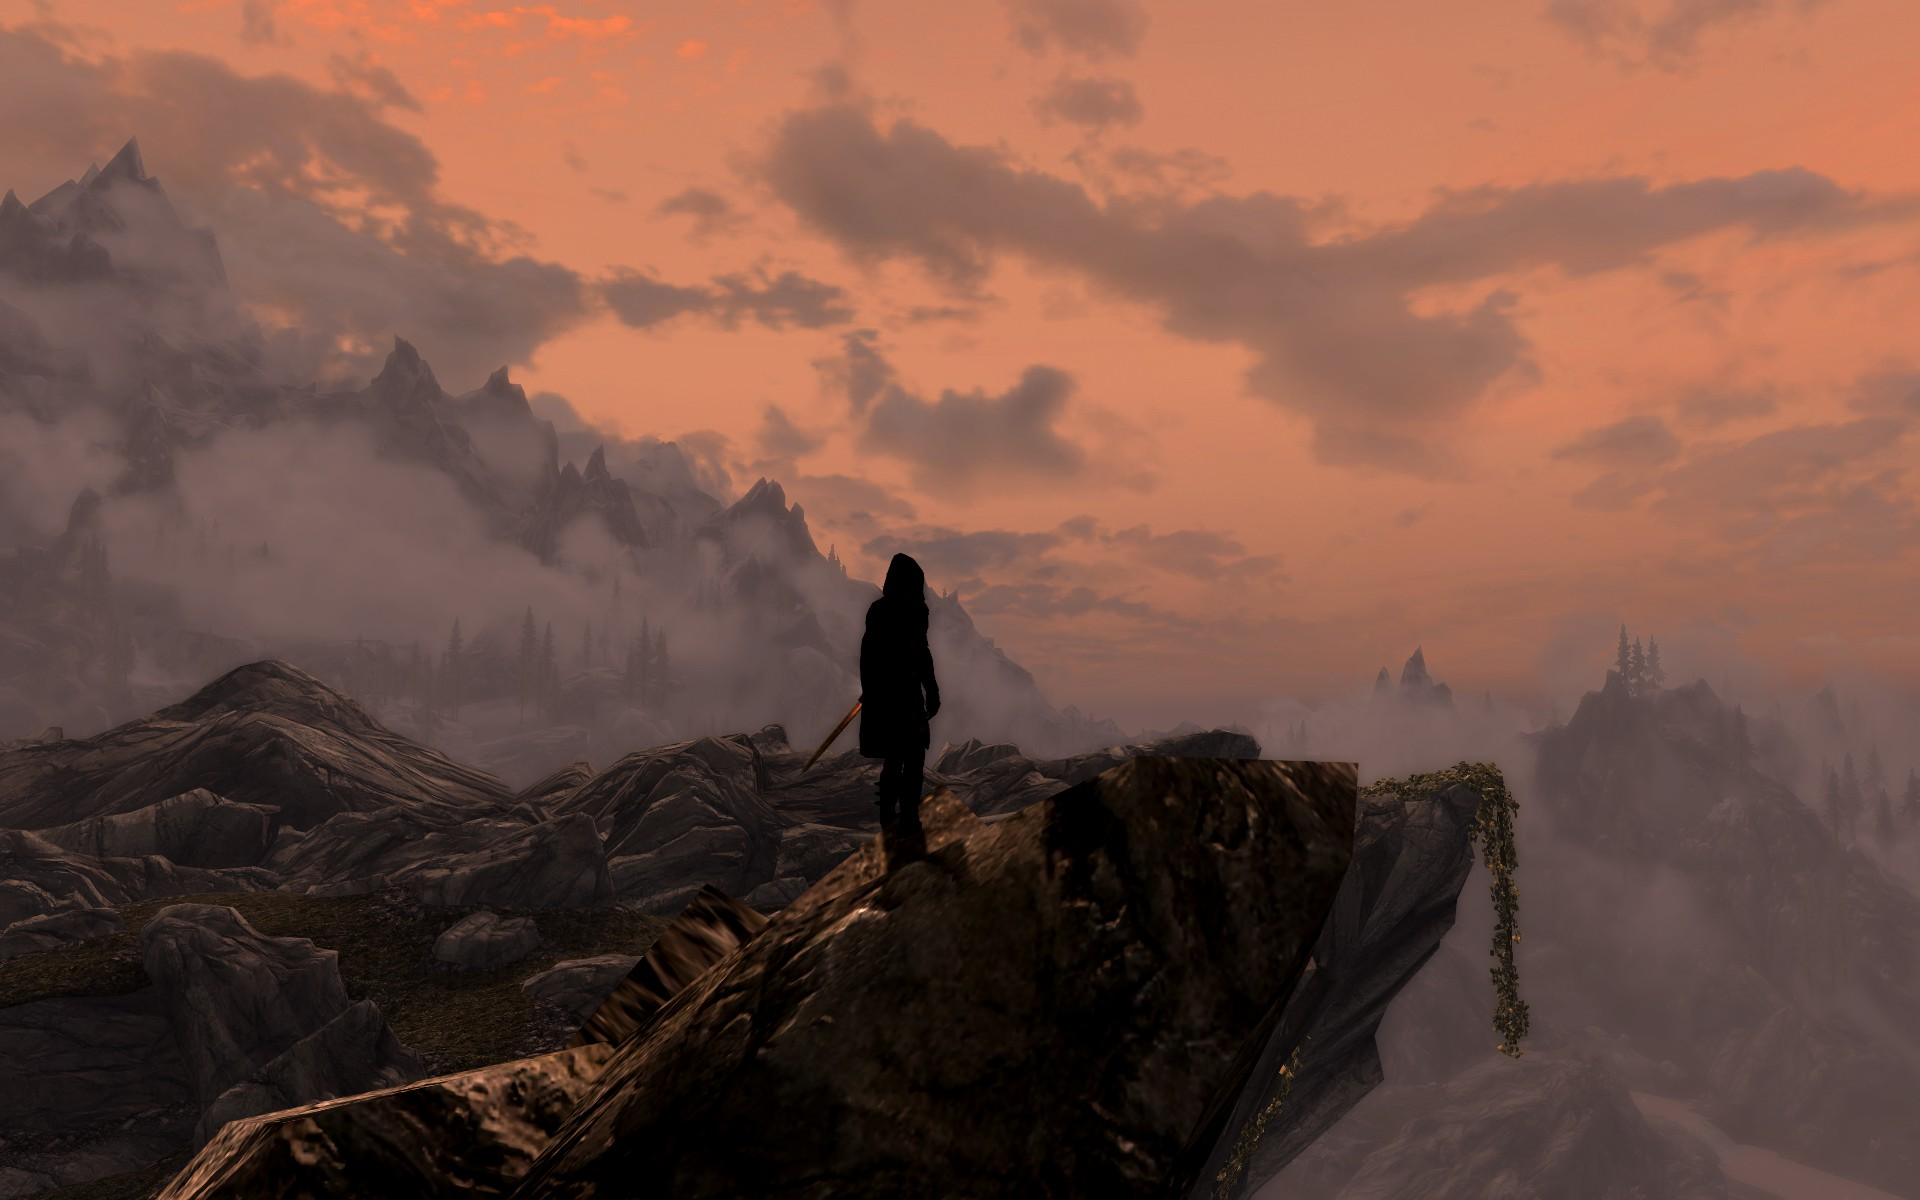 Skyrim is 6 years old and still breathtaking